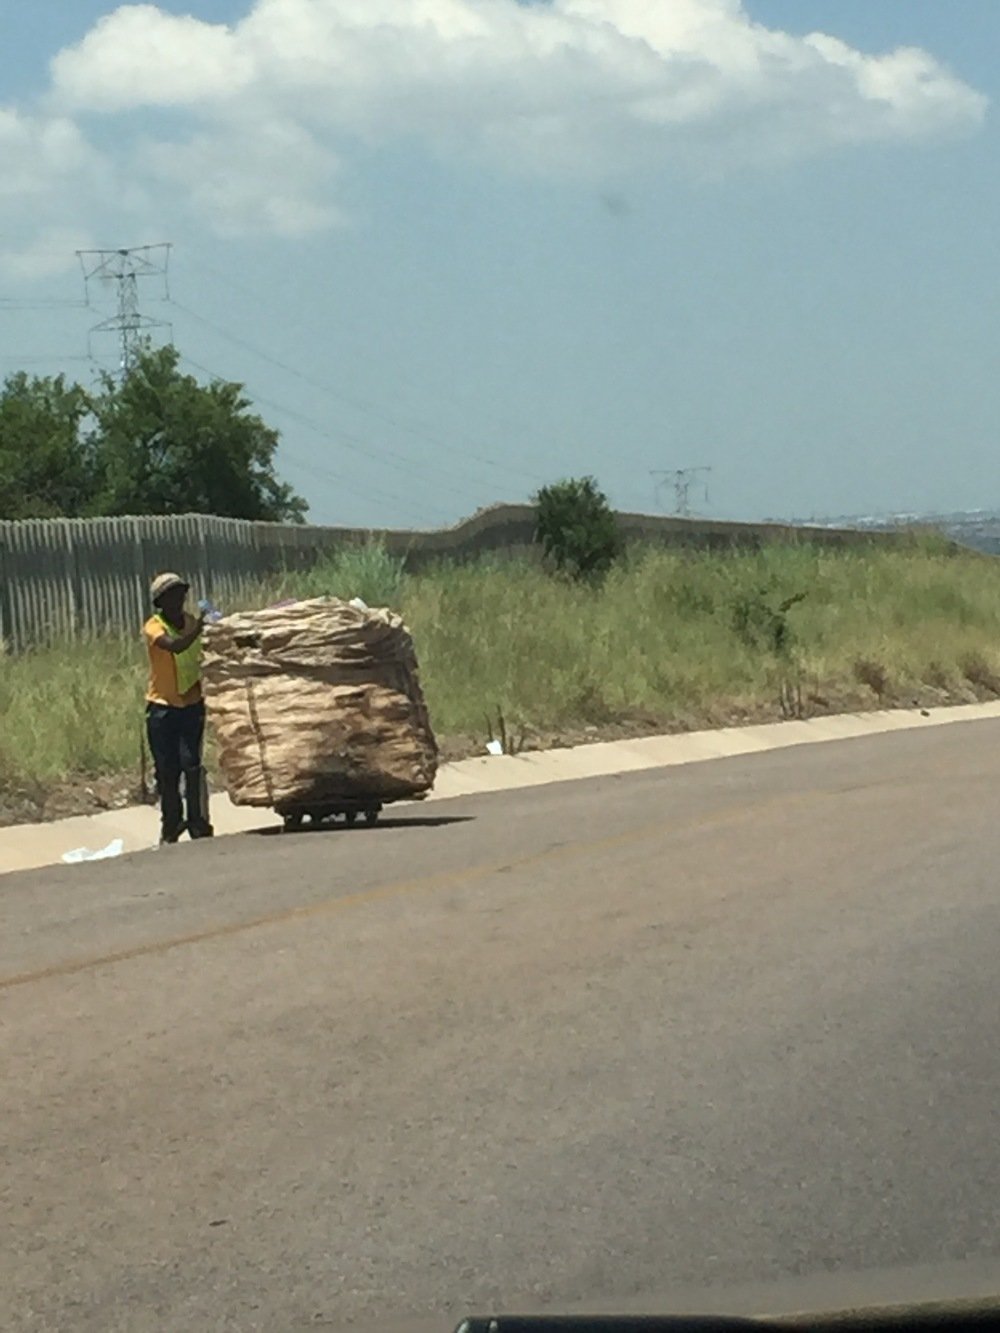 People would be walking these huge carts on the side of the road/highway. It broke my heart because I am guessing with the amount of work put into filling and transporting the carts, it wasn't a lot of payback.